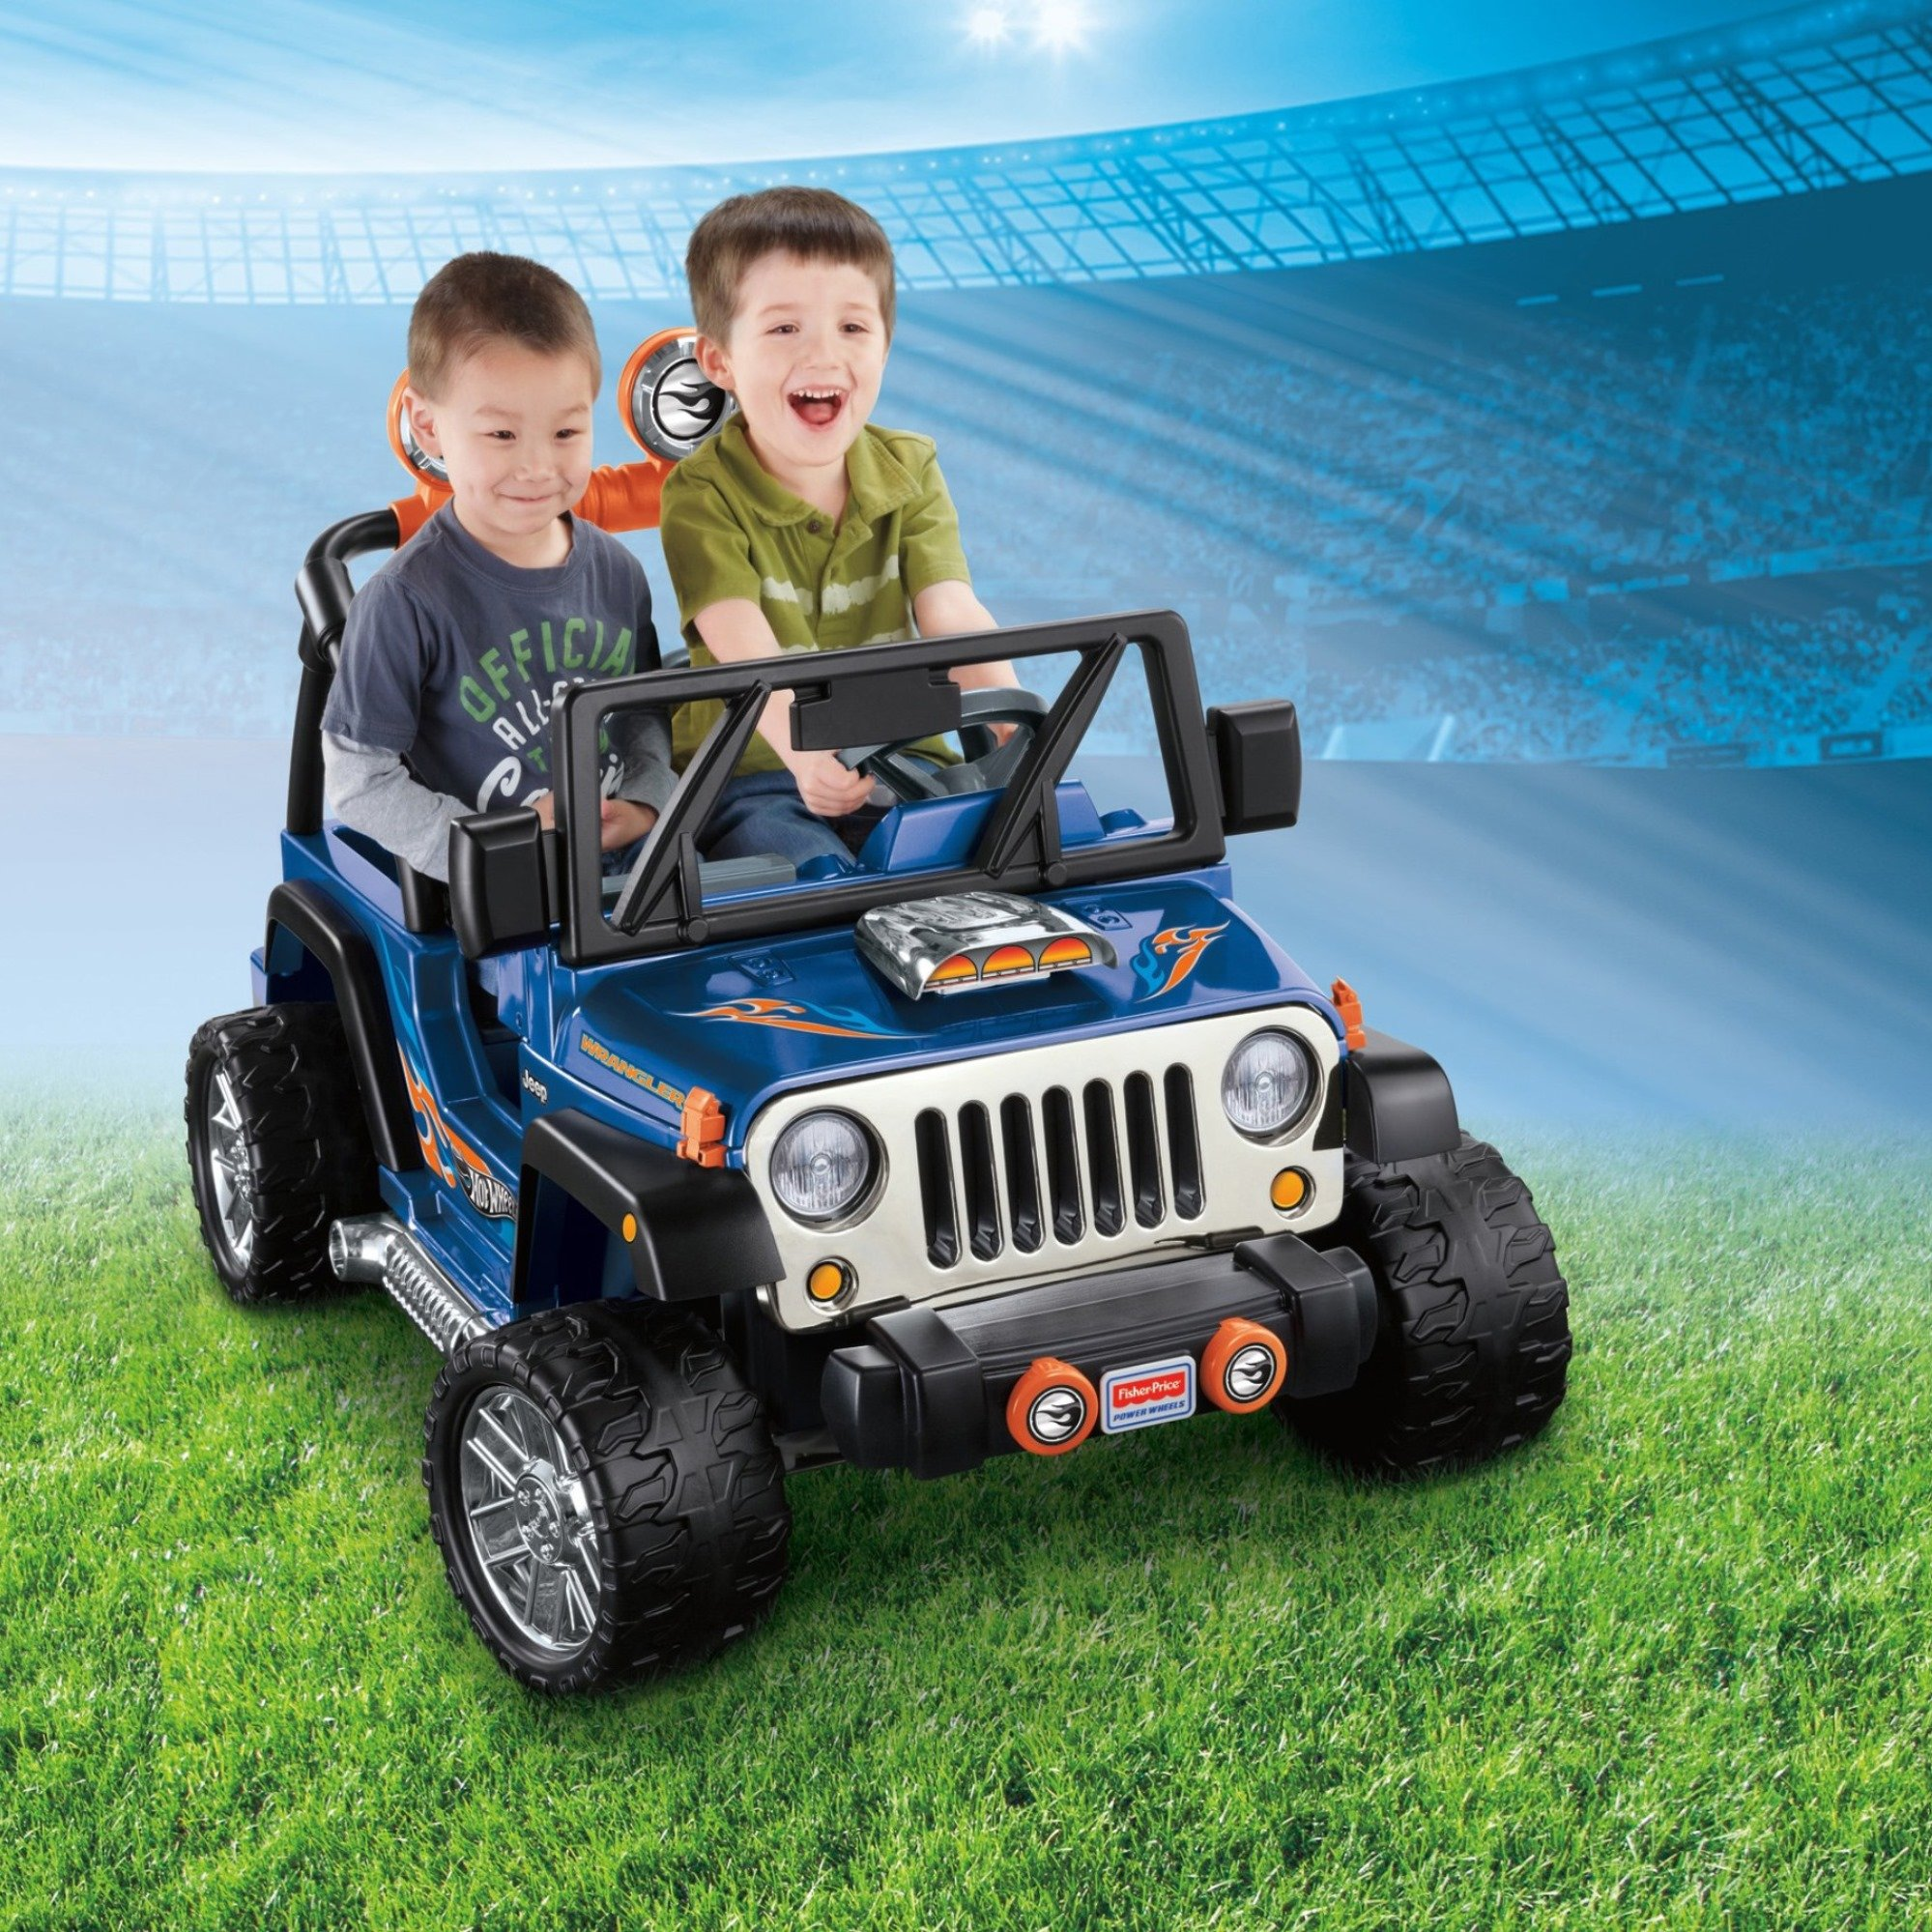 Power Wheels Hot Wheels Jeep Wrangler, Blue (12V) by Power Wheels (Image #2)